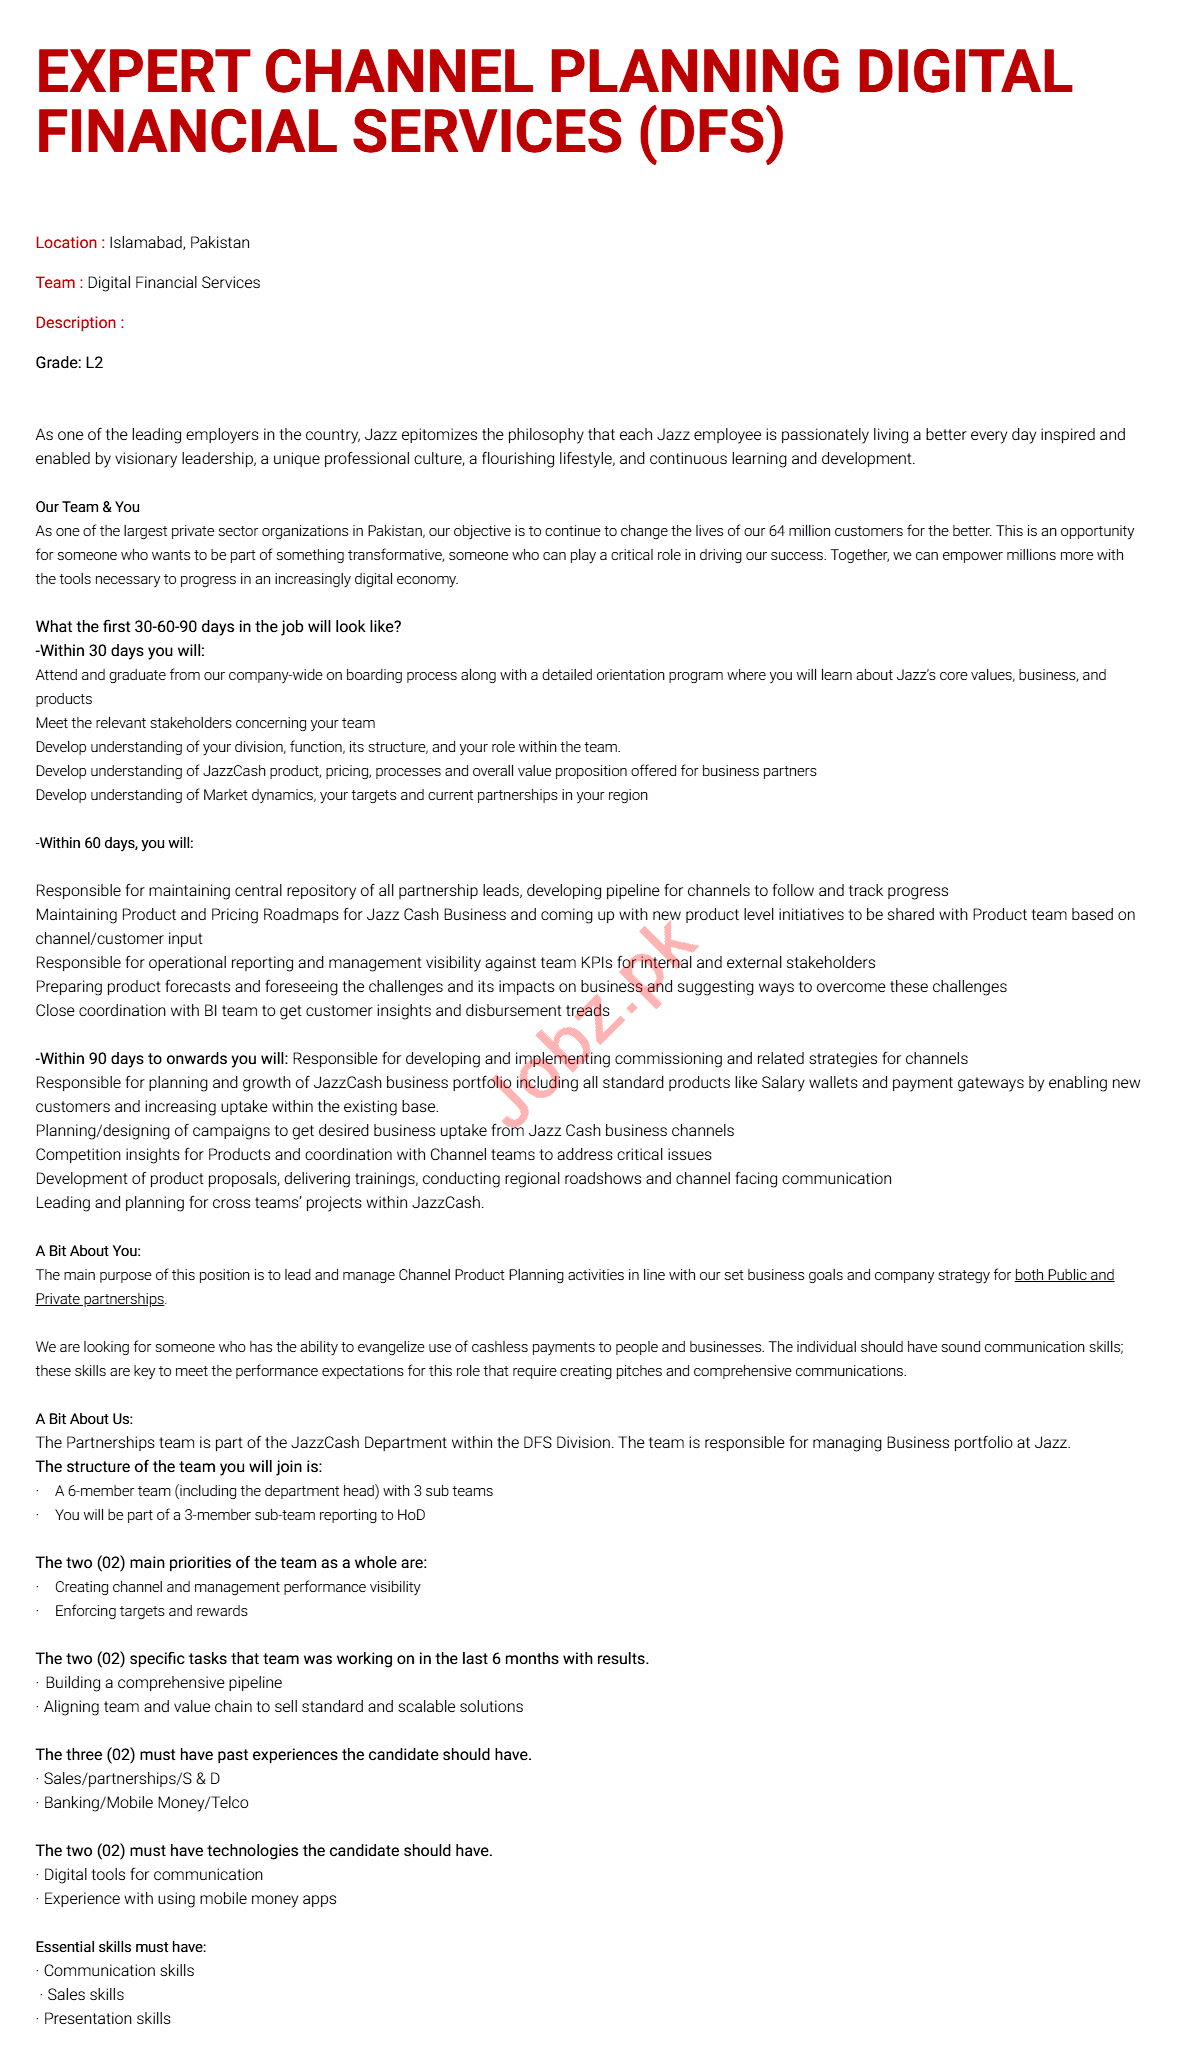 Expert Channel Planning DFS Jobs 2020 in Islamabad